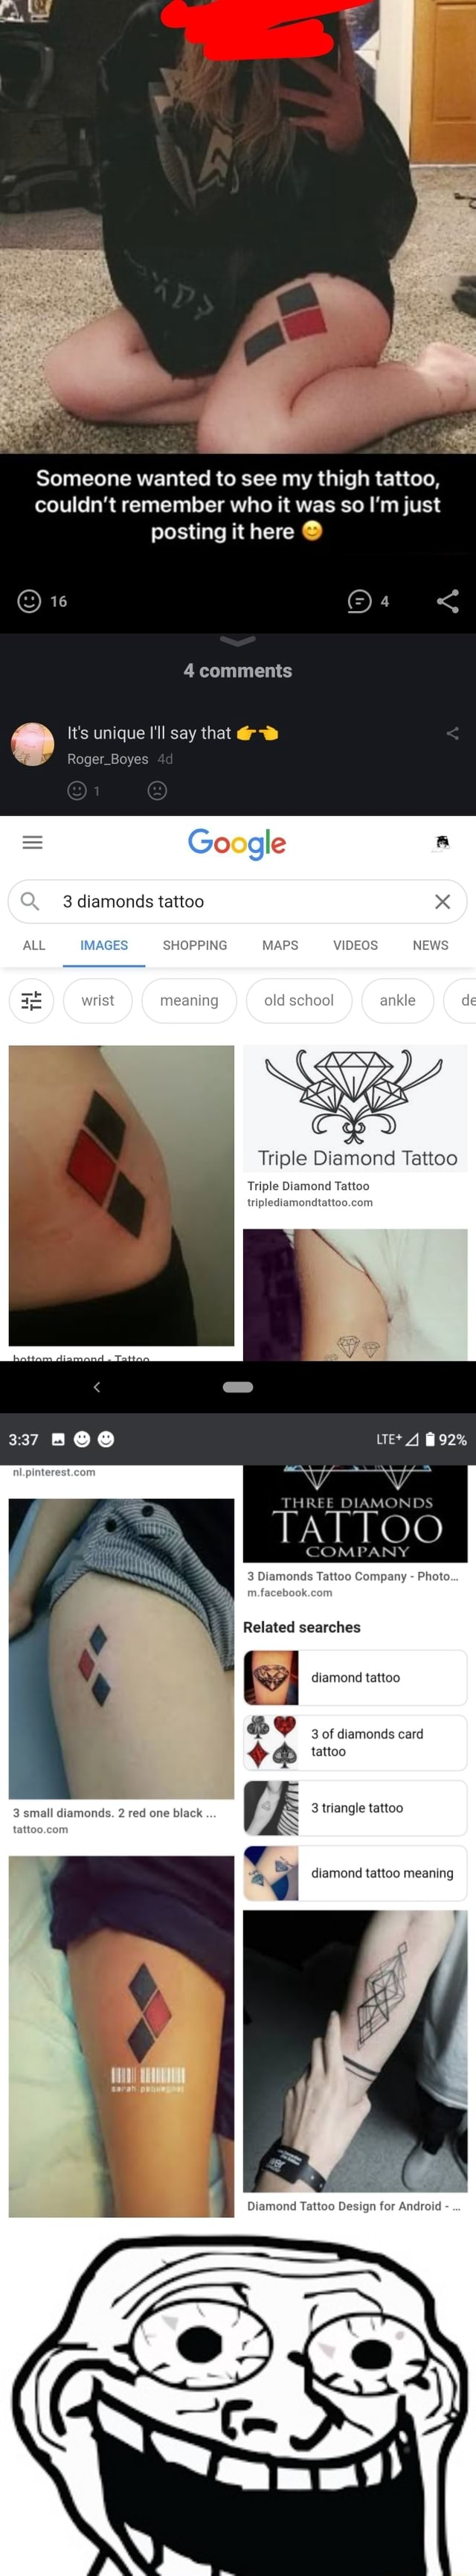 Someone wanted to see my thigh tattoo, couldn't remember who it was so I'm just posting it here comments It's unique I'll say that Roger Boyes Google 3 diamonds tattoo x SHOPPING MAPS NEWS meaning old school ankle Triple Diamond Tattoo Triple Diamond Tattoo 337 BO THREE DIAMONDS TATTOO COMPANY 3 Diamonds Tattoo Company Photo. Related searches diamond tattoo of diamonds card tattoo 3 small diamonds. 2 red one black. 3 triangle tattoo diamond tattoo meaning meme